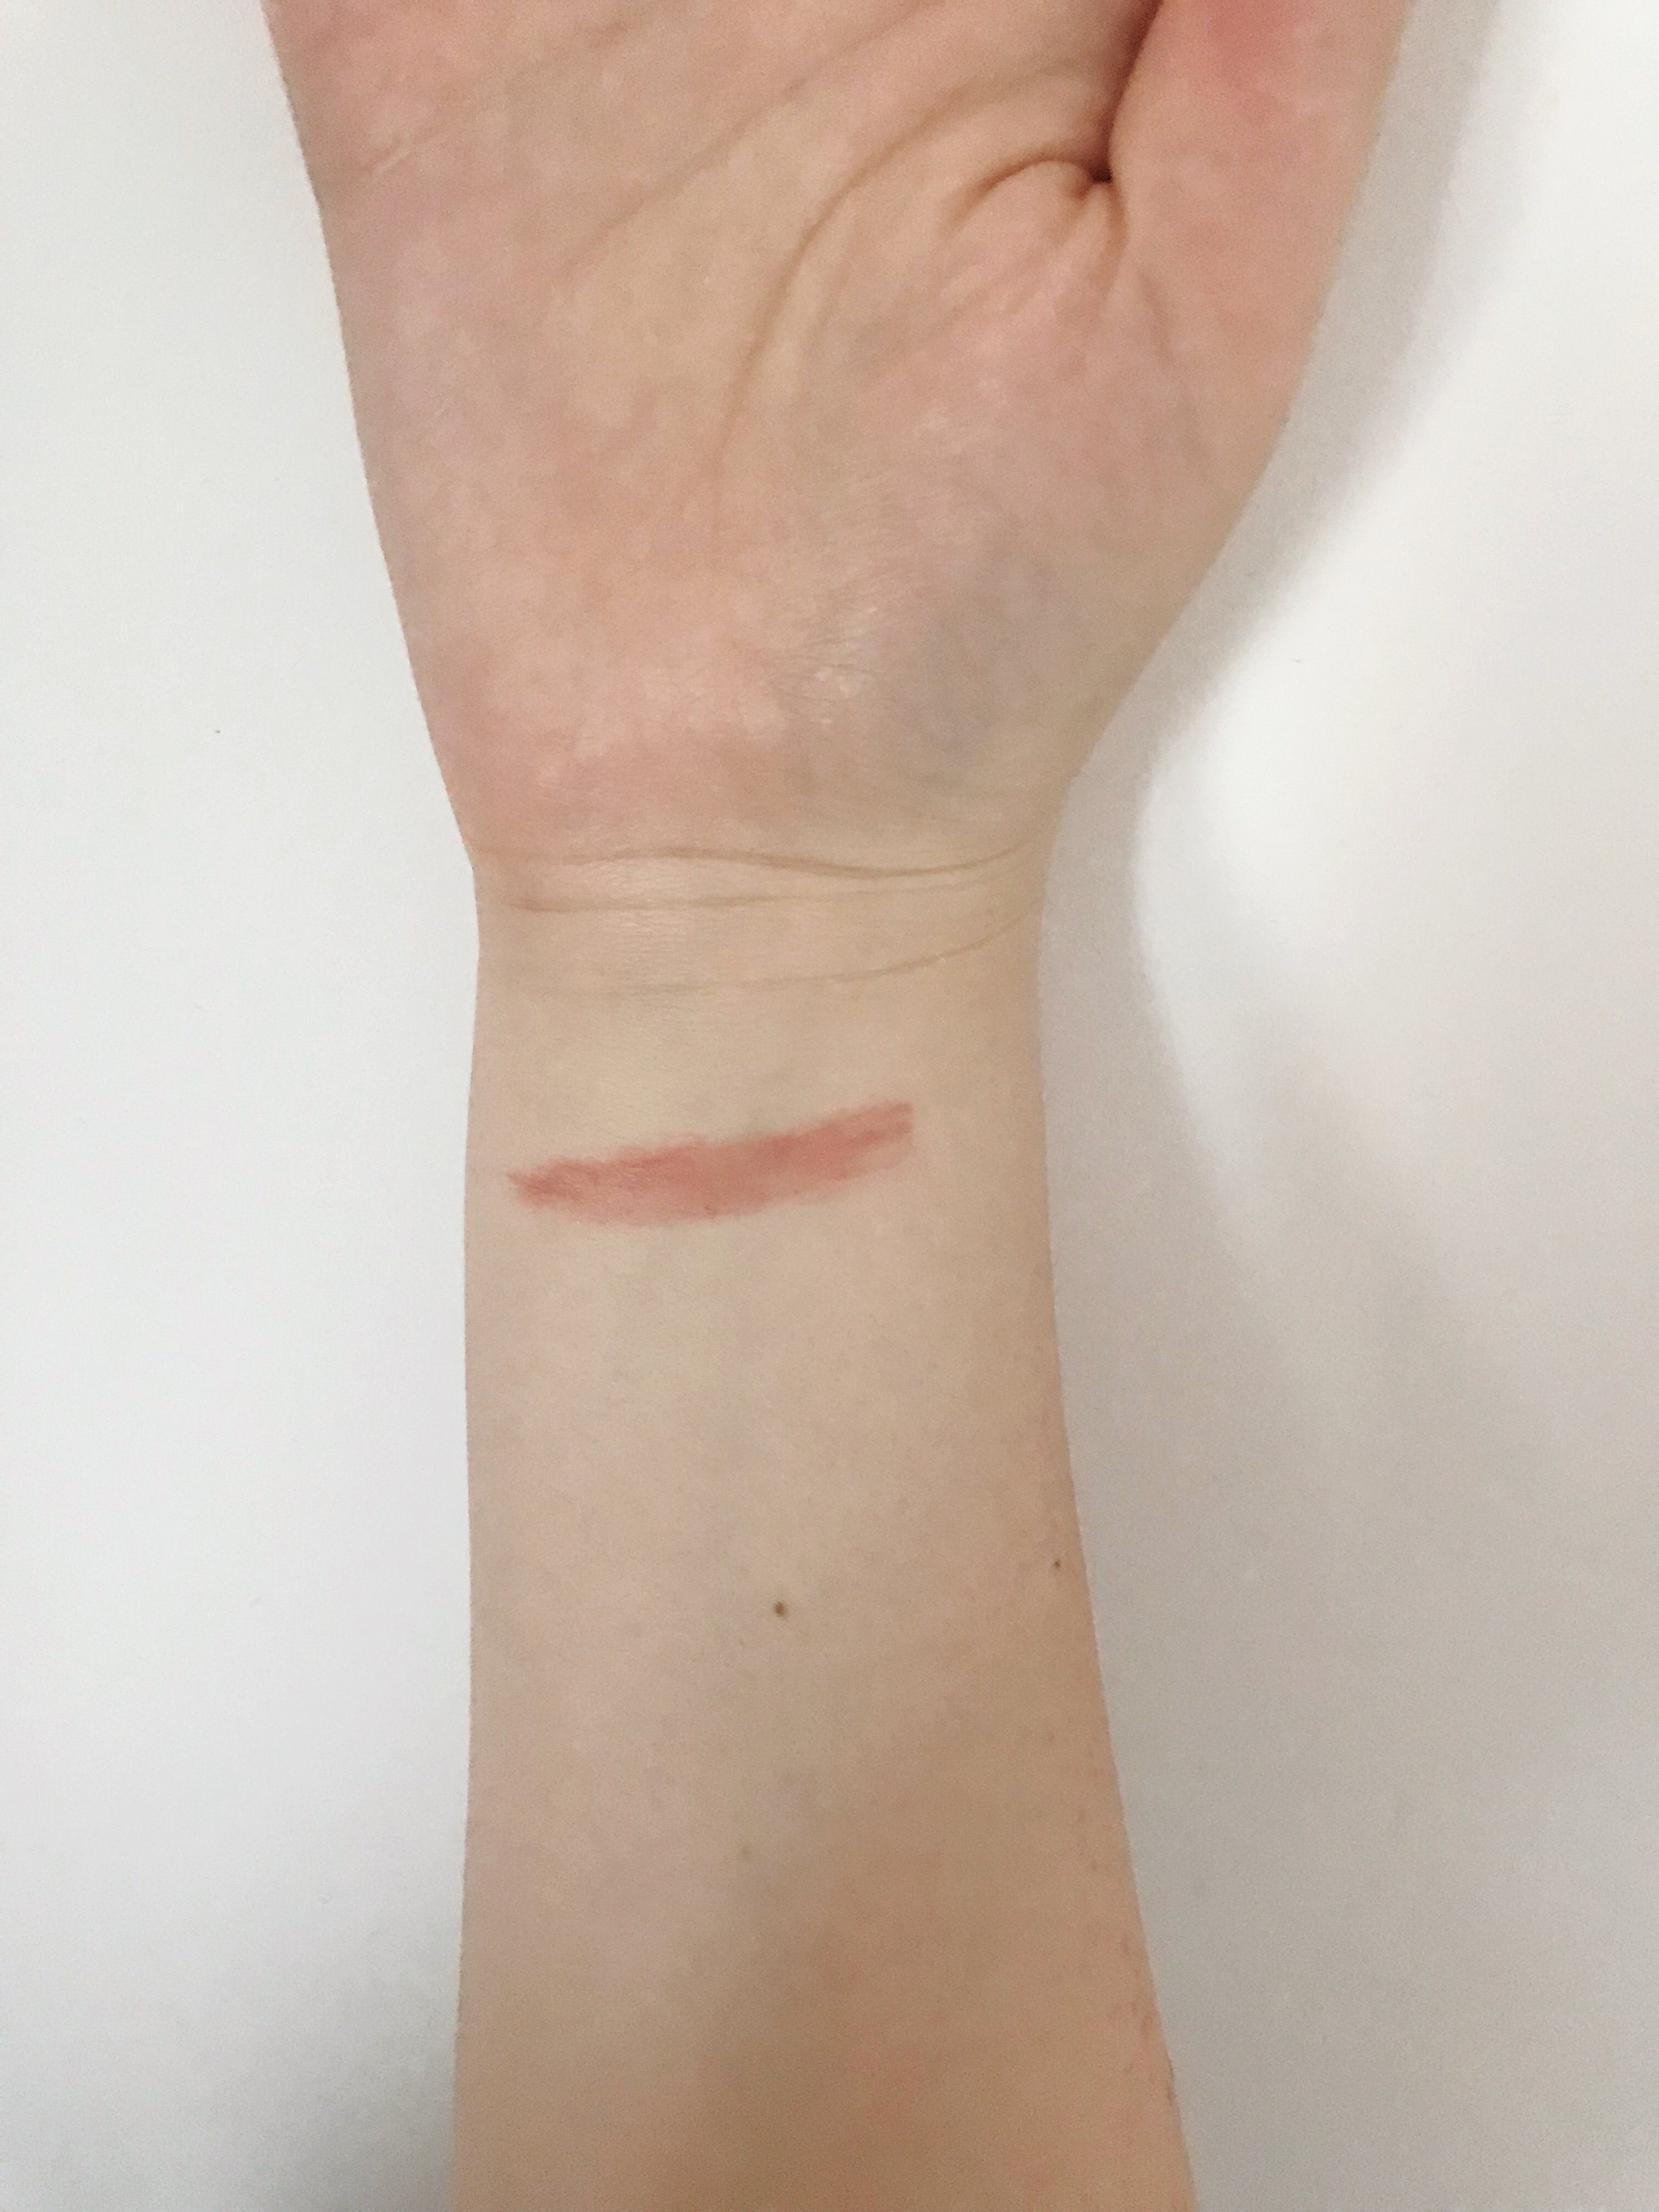 I swatched it on my arm. Note: I applied it directly on my skin, didn't put any foundation before swatching it.